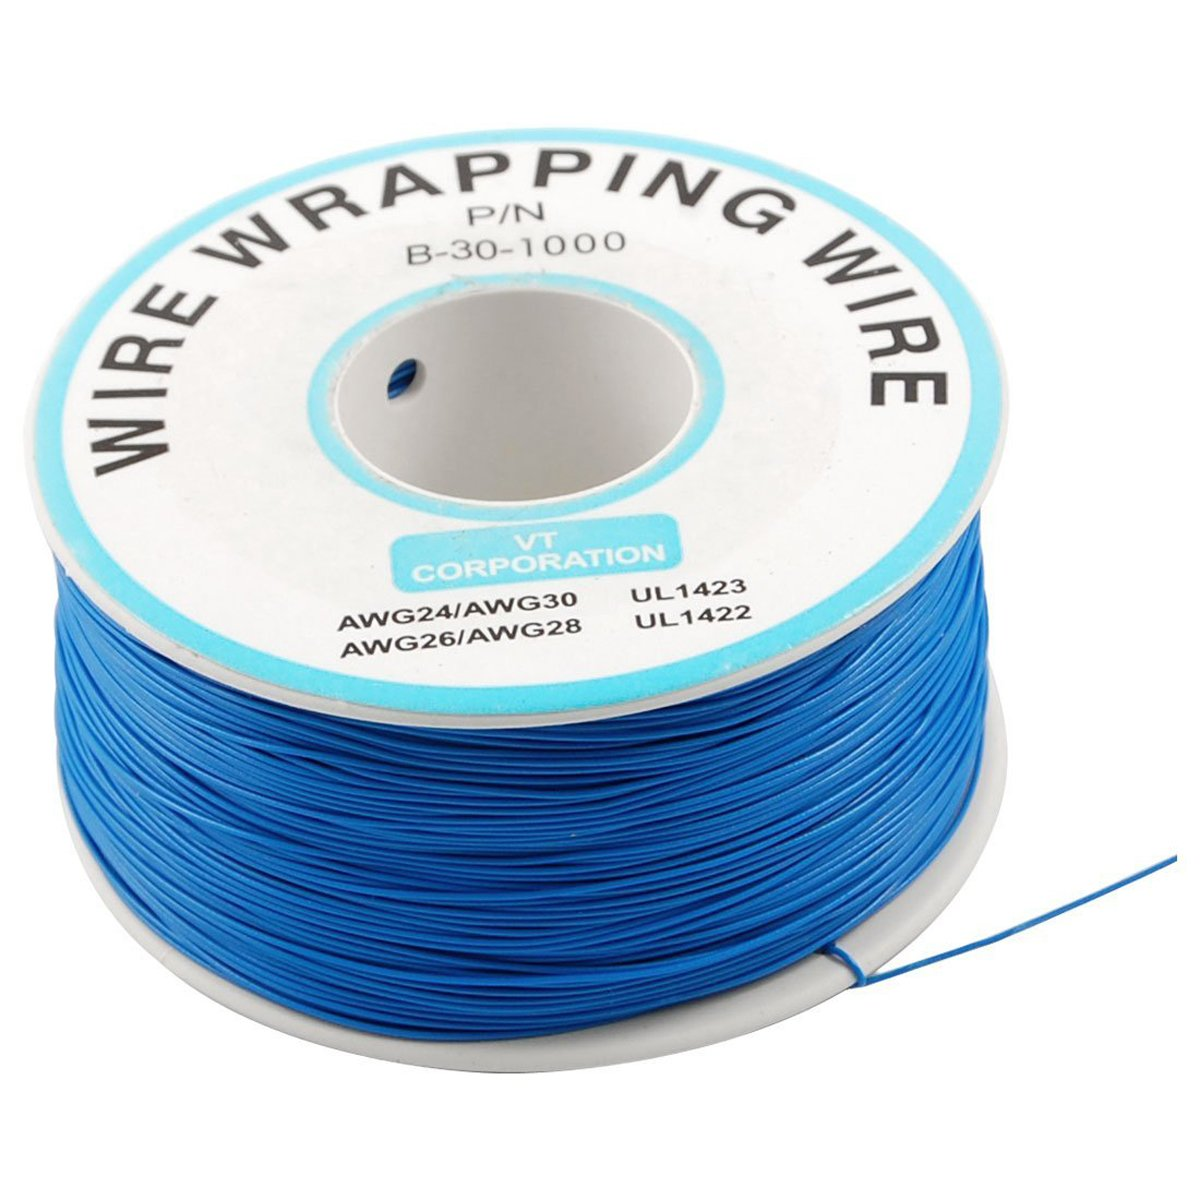 Yxq 30awg Wire Wrapping Pvc Coated Tin Plated Copper Cable Electric Buy Wirepvc 305m Purple